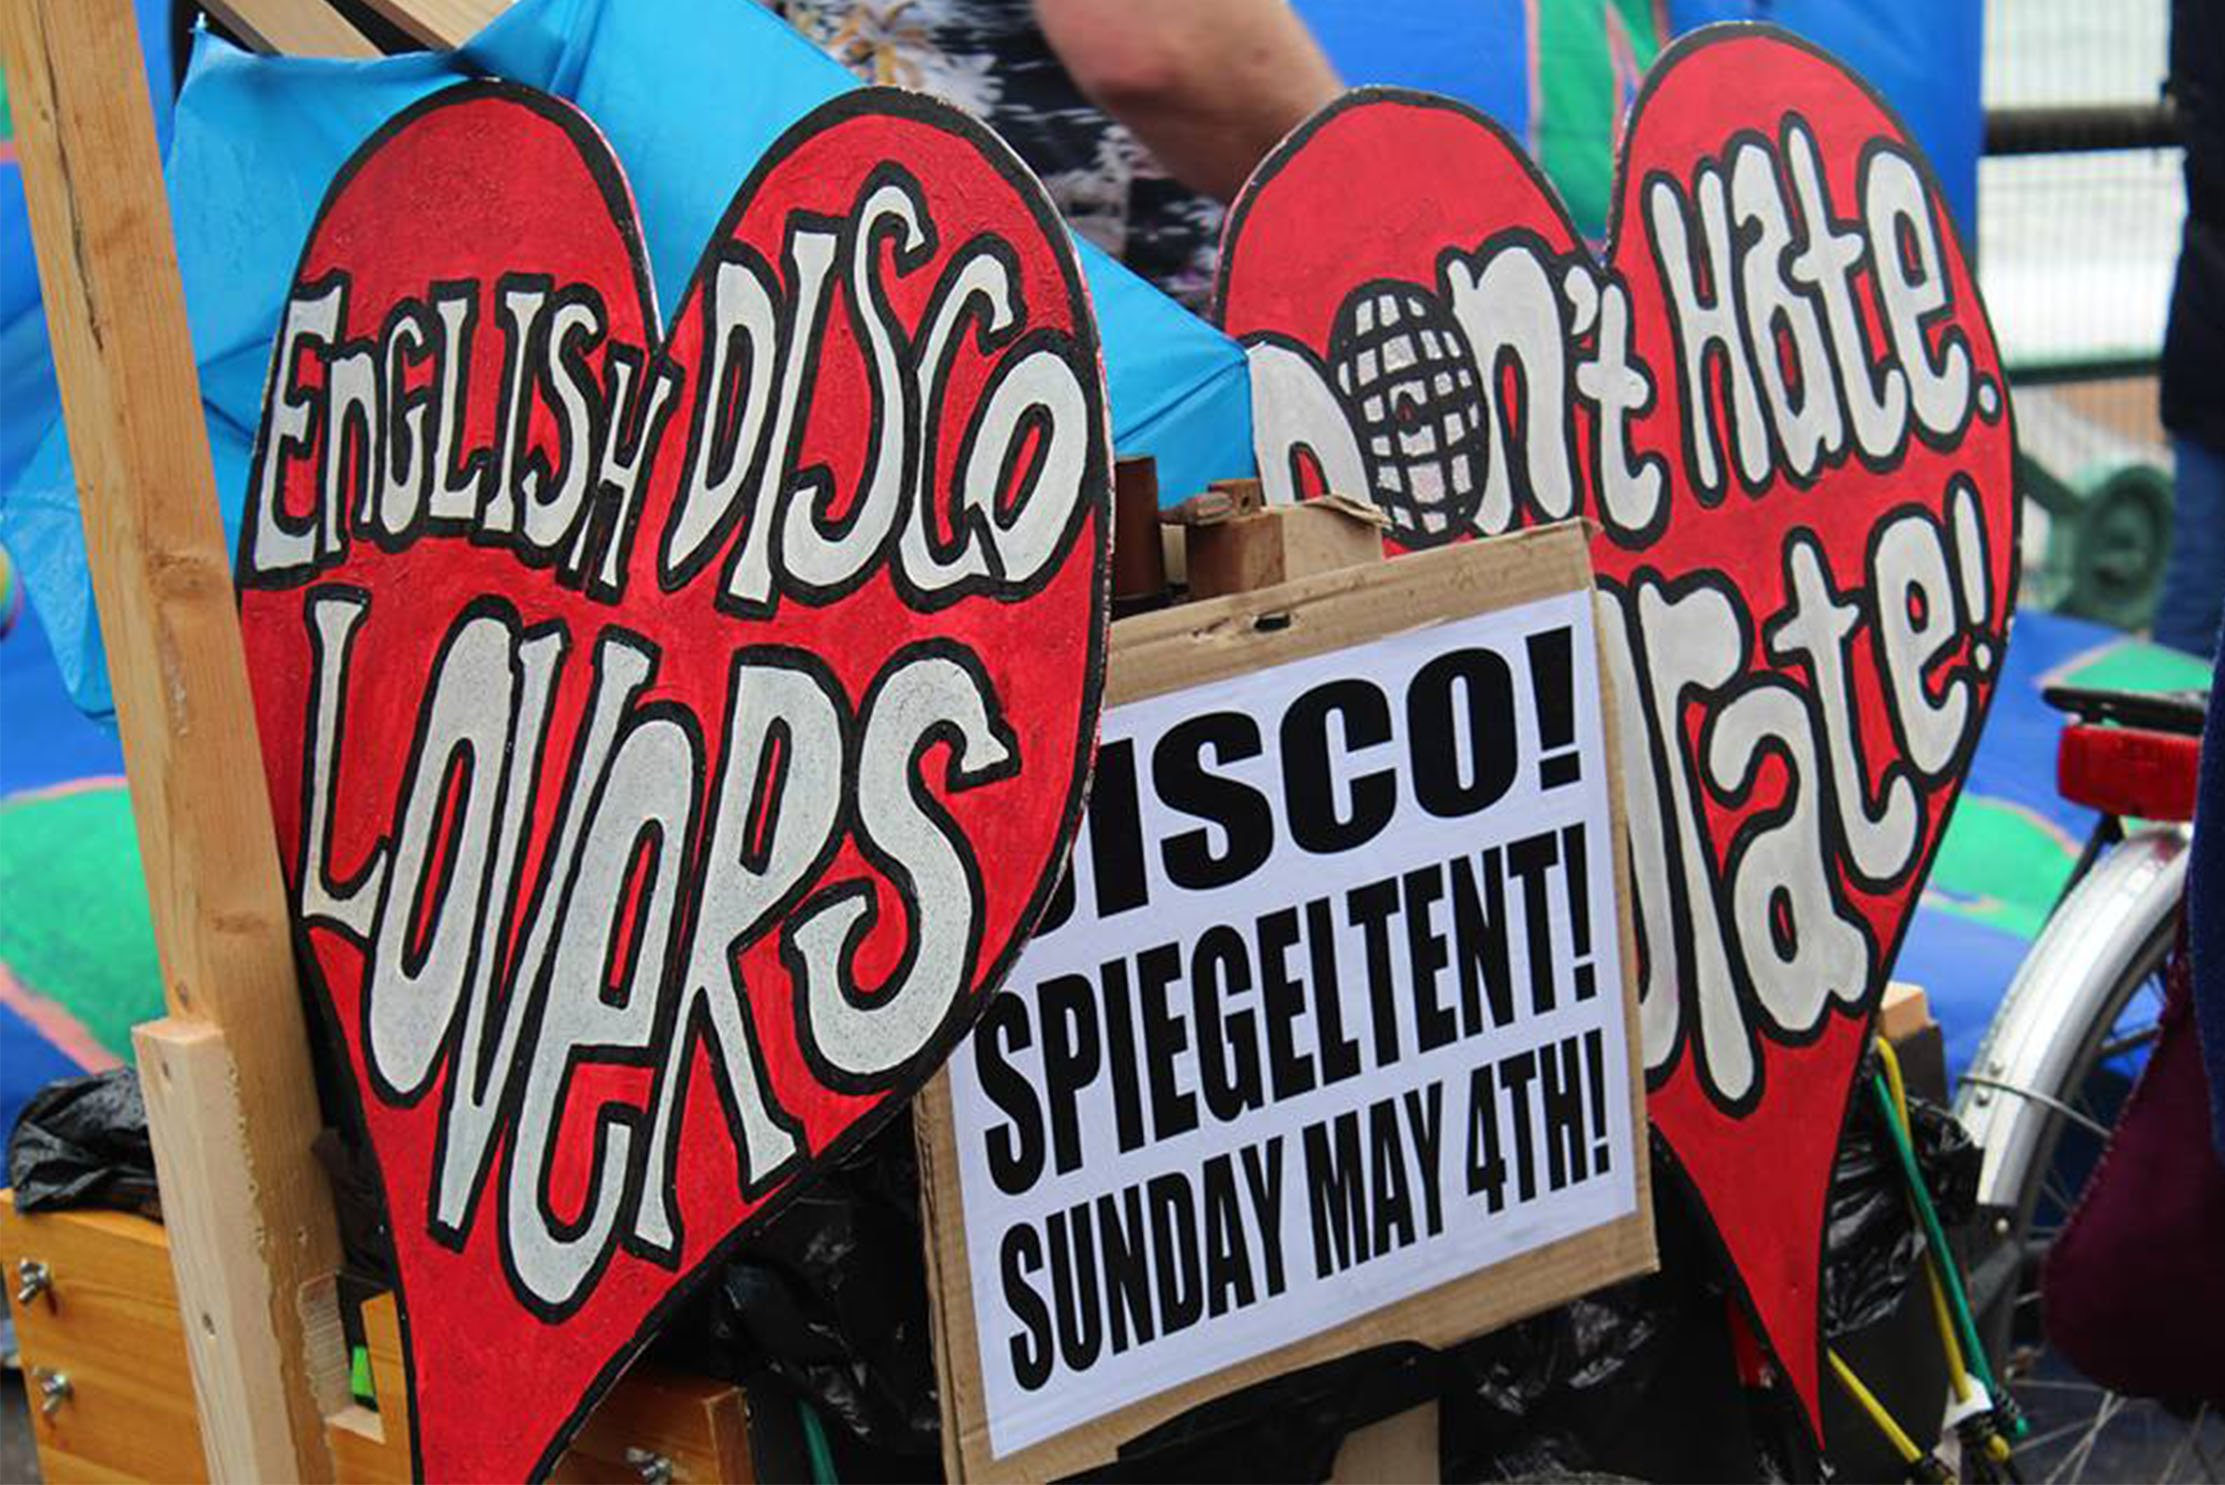 Infamous Brighton & Hove party starters, English Disco Lovers, return to Brighton Spiegeltent for another Fringe season